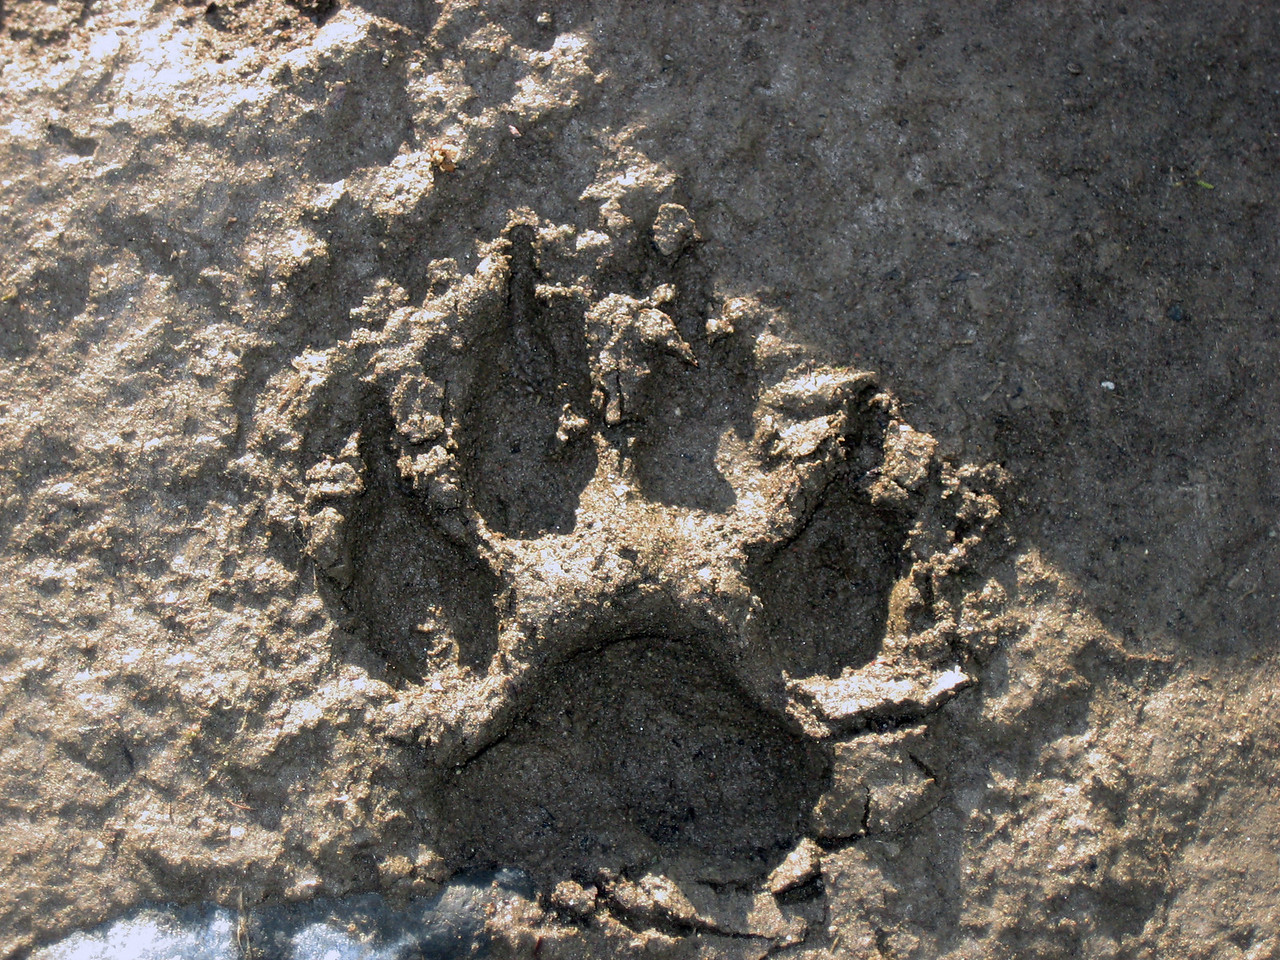 Wolf Print along Lamar River - Yellowstone National Park